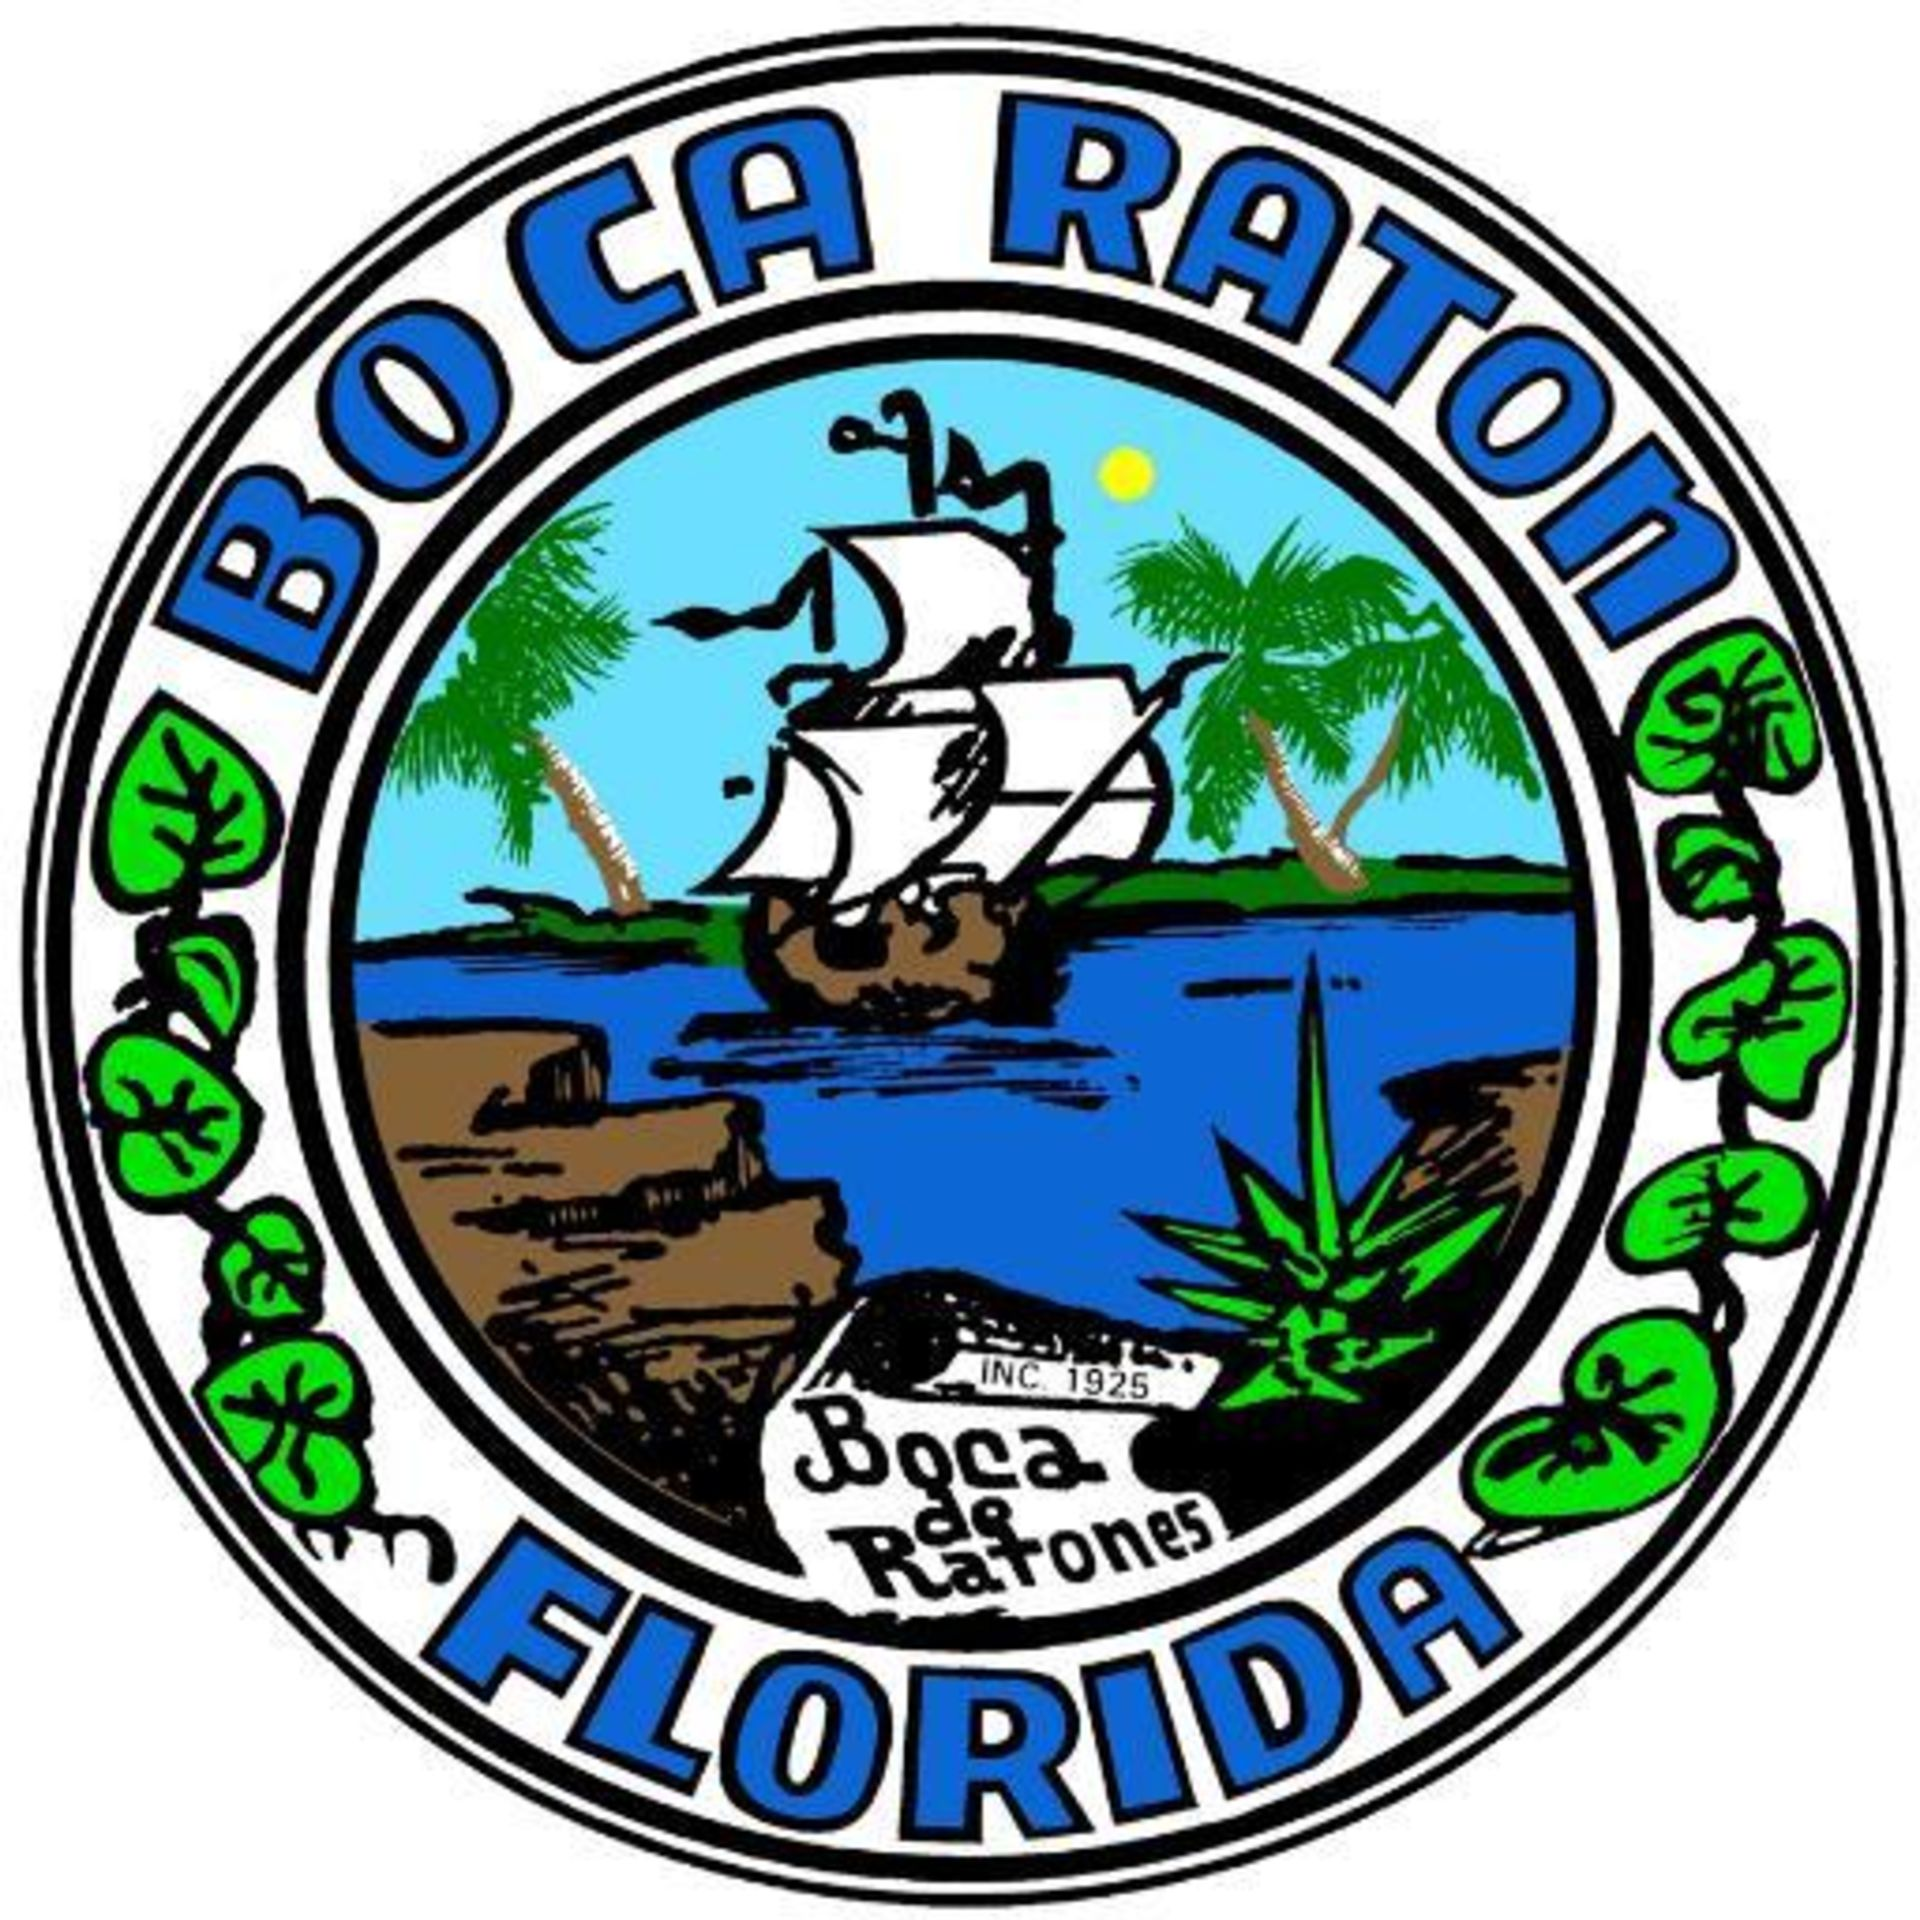 Boca Raton – City for all seasons